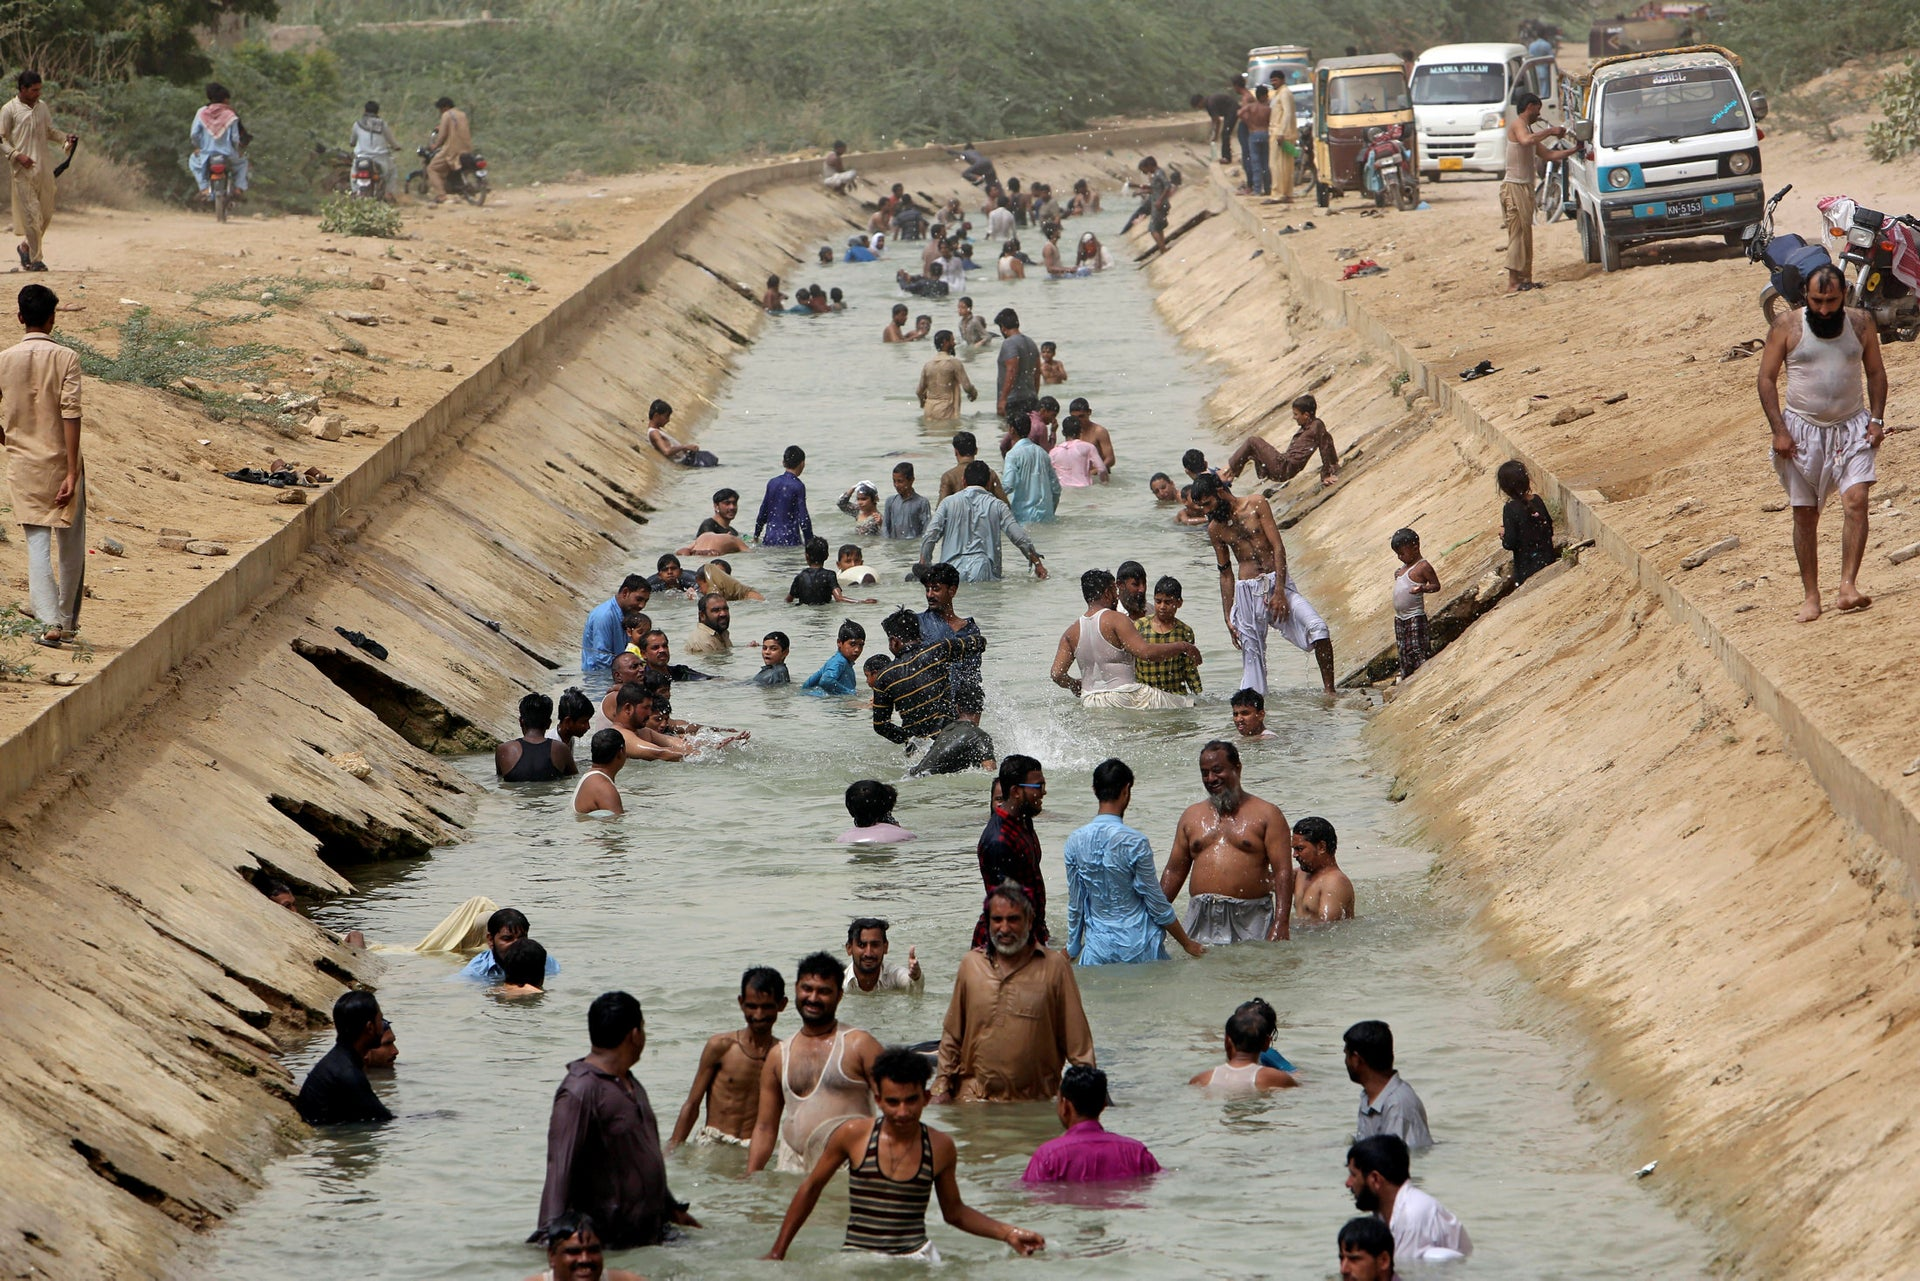 People cool themselves off in a canal  in Karachi as temperature passes 40 degrees Celsius, and that's more than 10 degrees below the heat experienced by the town of Nawabshah in April 2018. Picture taken on May 30, 2018